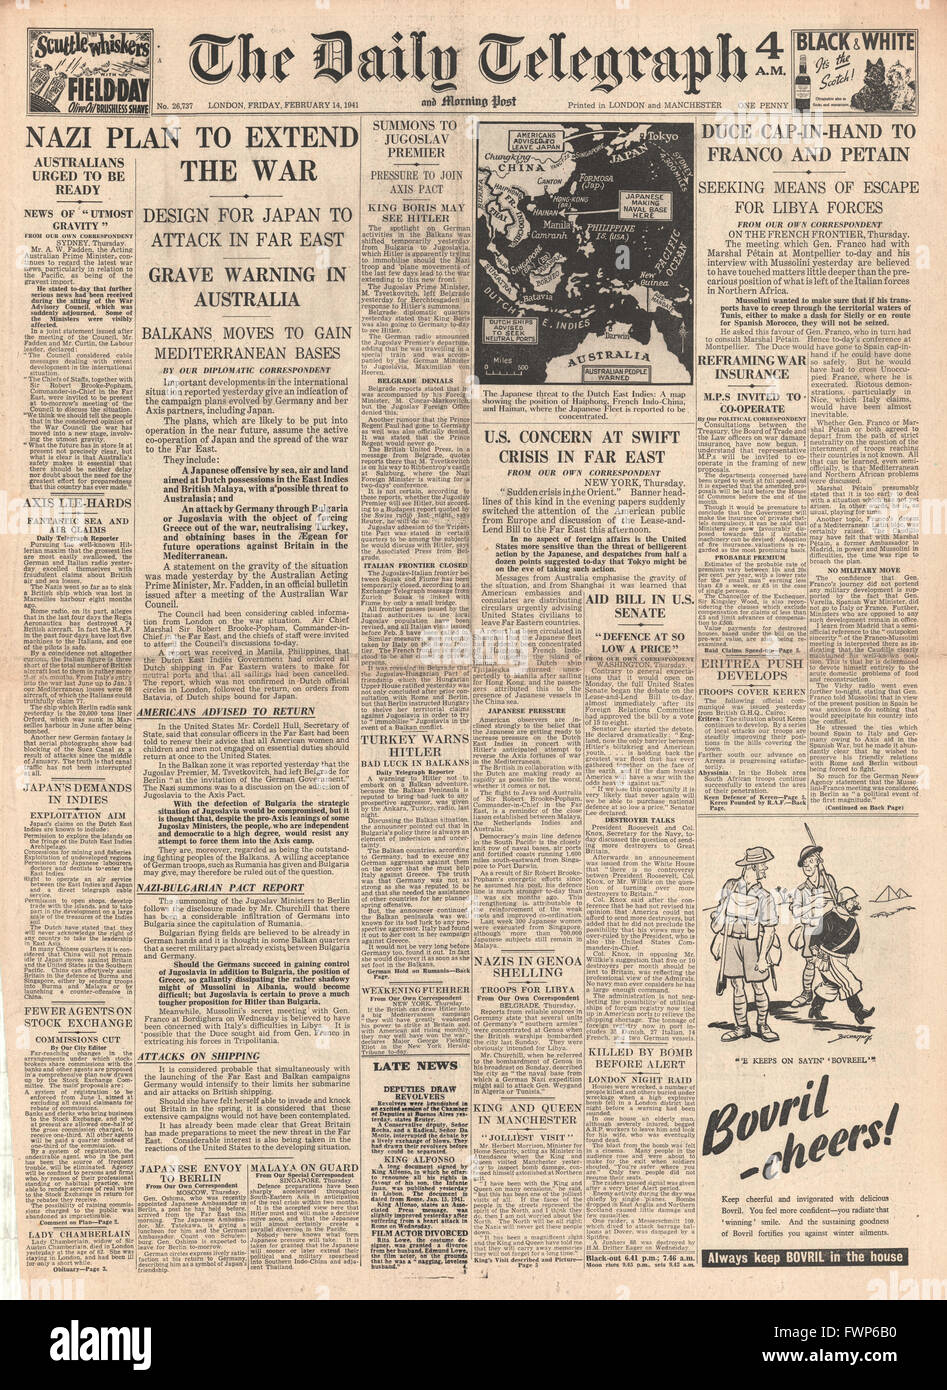 1941 front page Daily Telegraph Australia and U.S. concerns over Far East tension, Yugoslav Premier Dragisa Cvetkovic - Stock Image